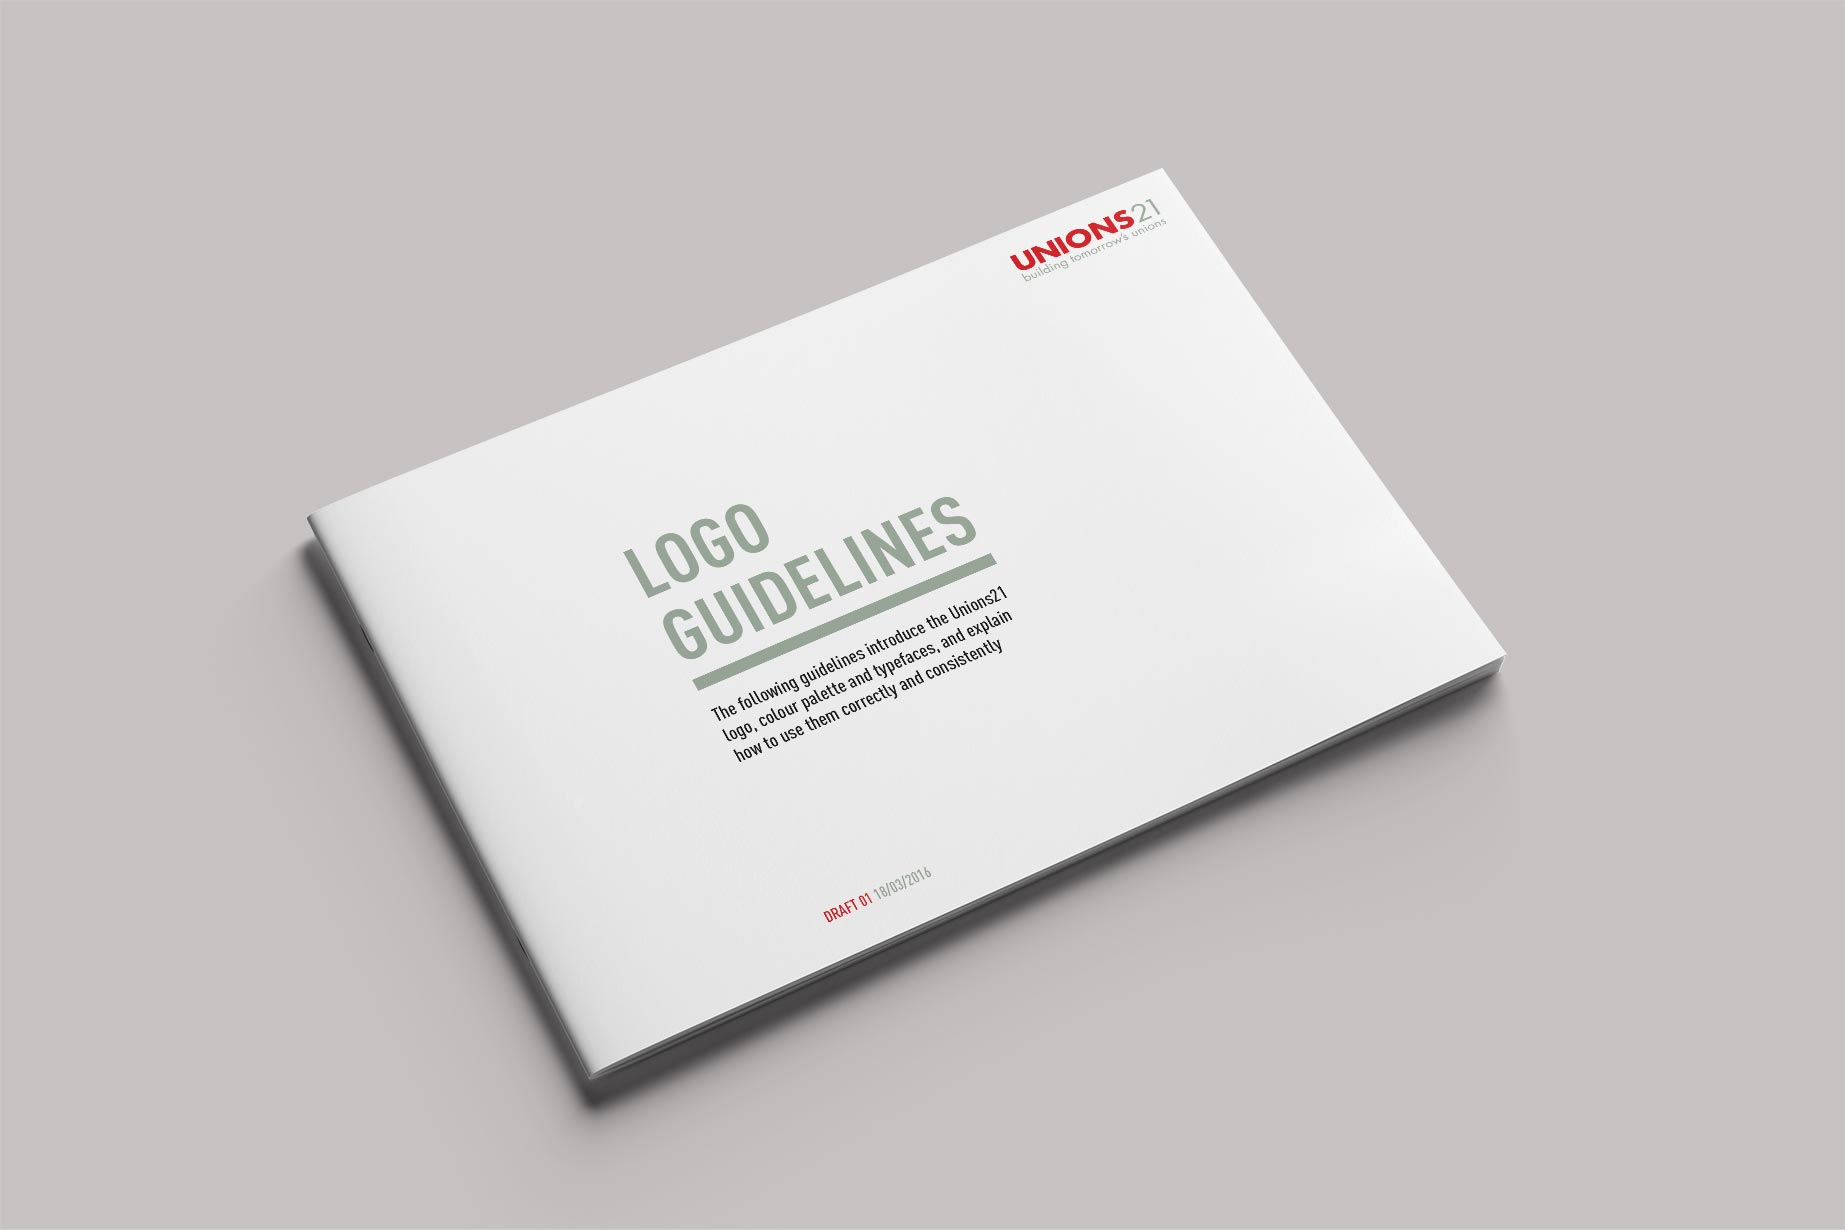 cover of brand guidelines docuemnt